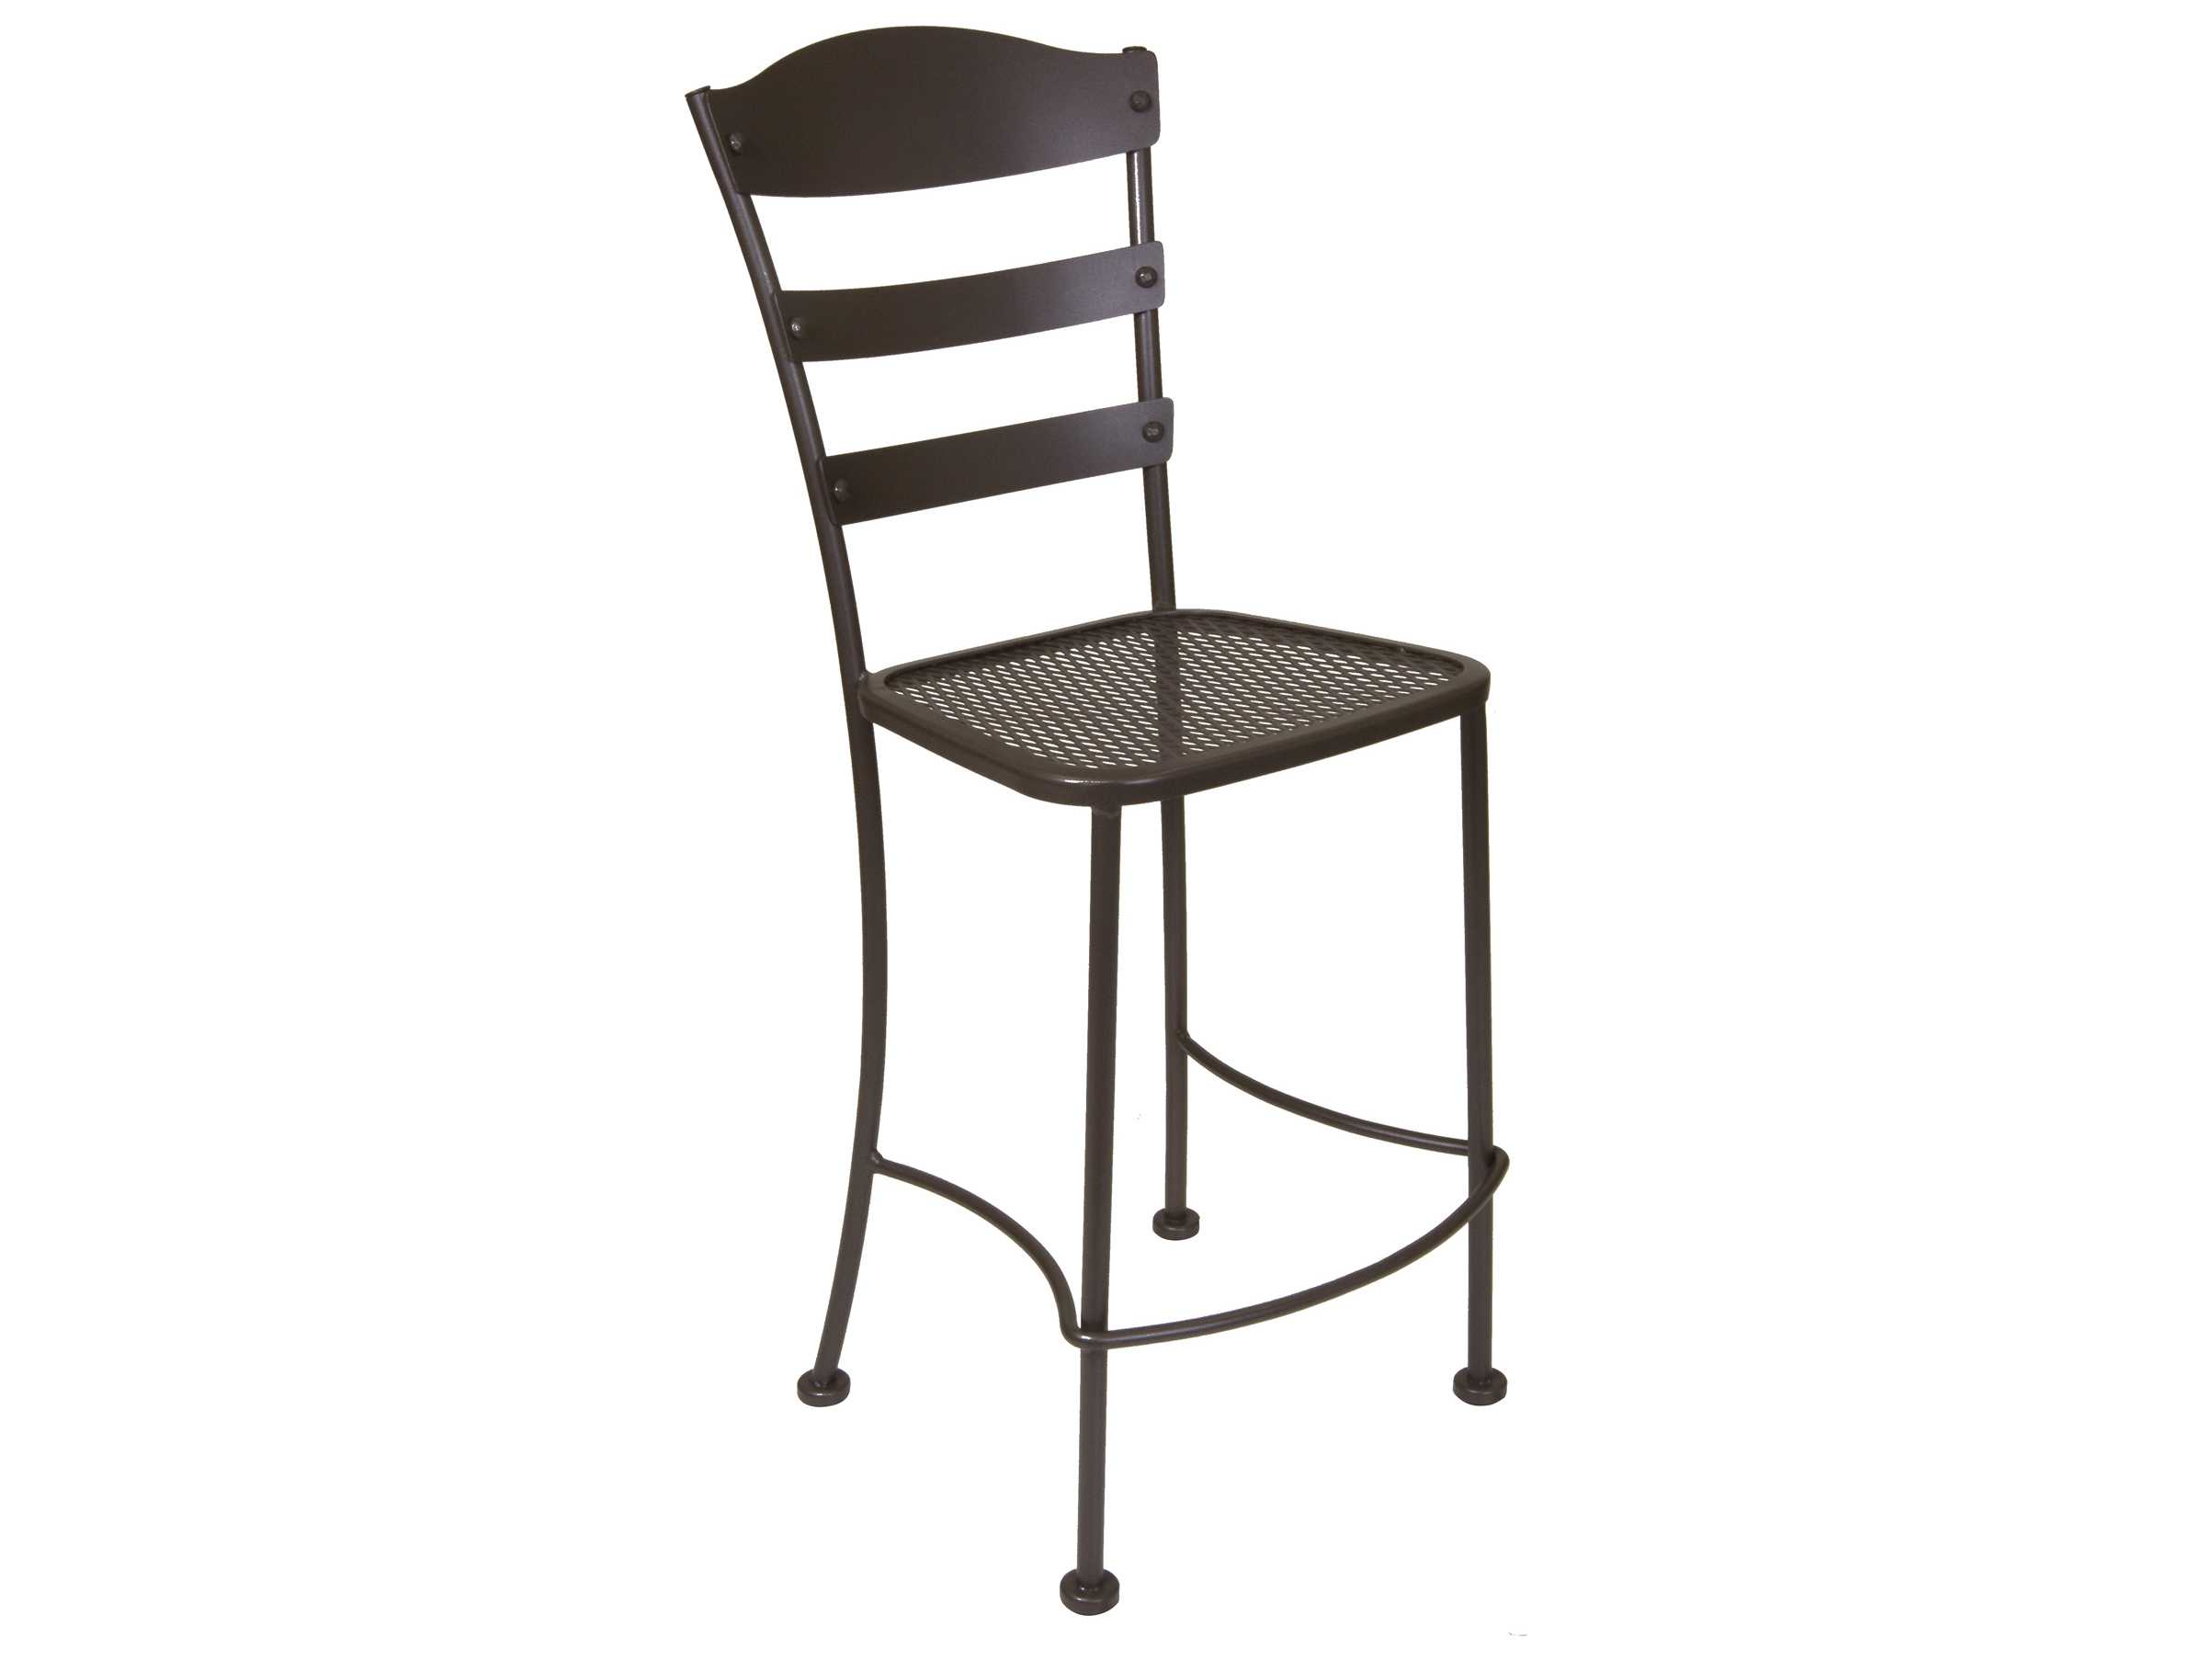 OW Lee Chalet Counter Stool Replacement Cushions 616 CSCH : OW616CSzm from www.patioliving.com size 2407 x 1806 jpeg 73kB